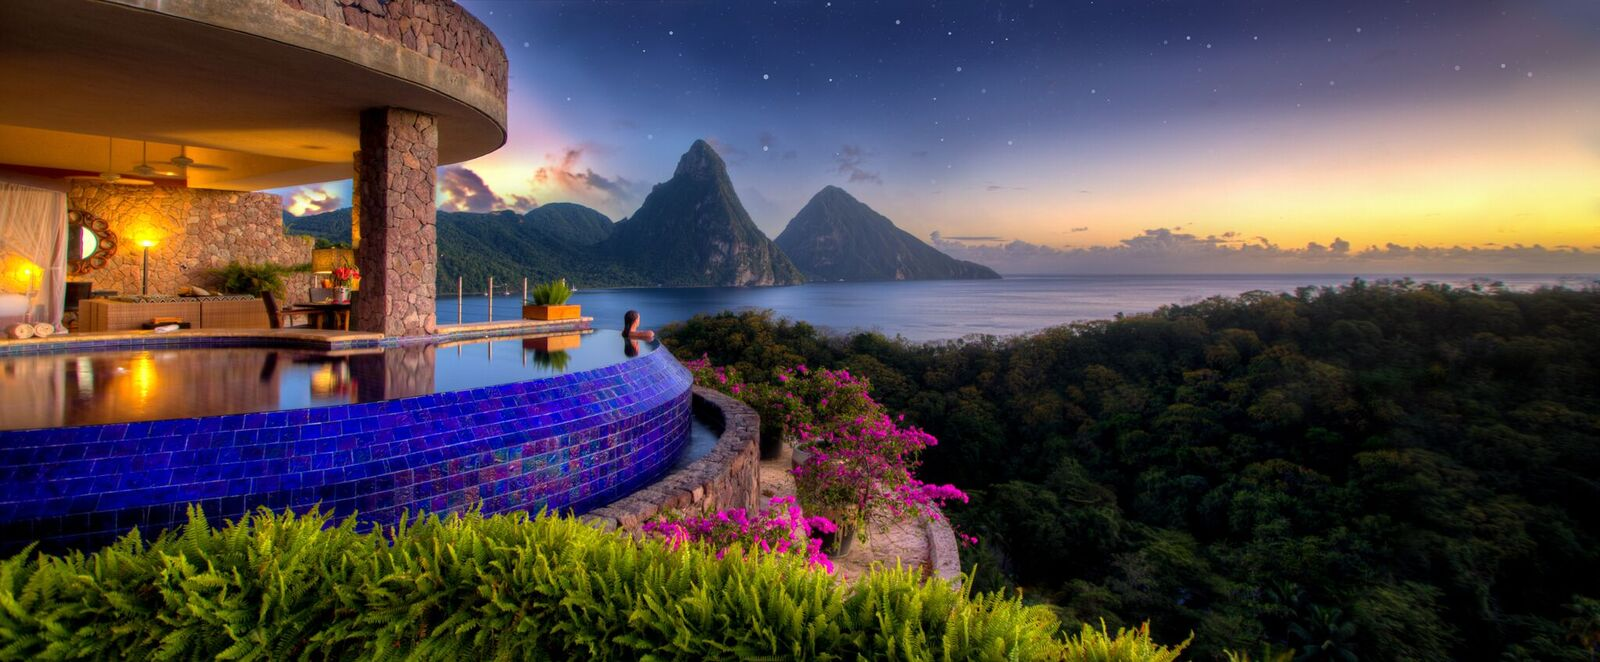 Luxury accommodations with view of the Caribbean Sea